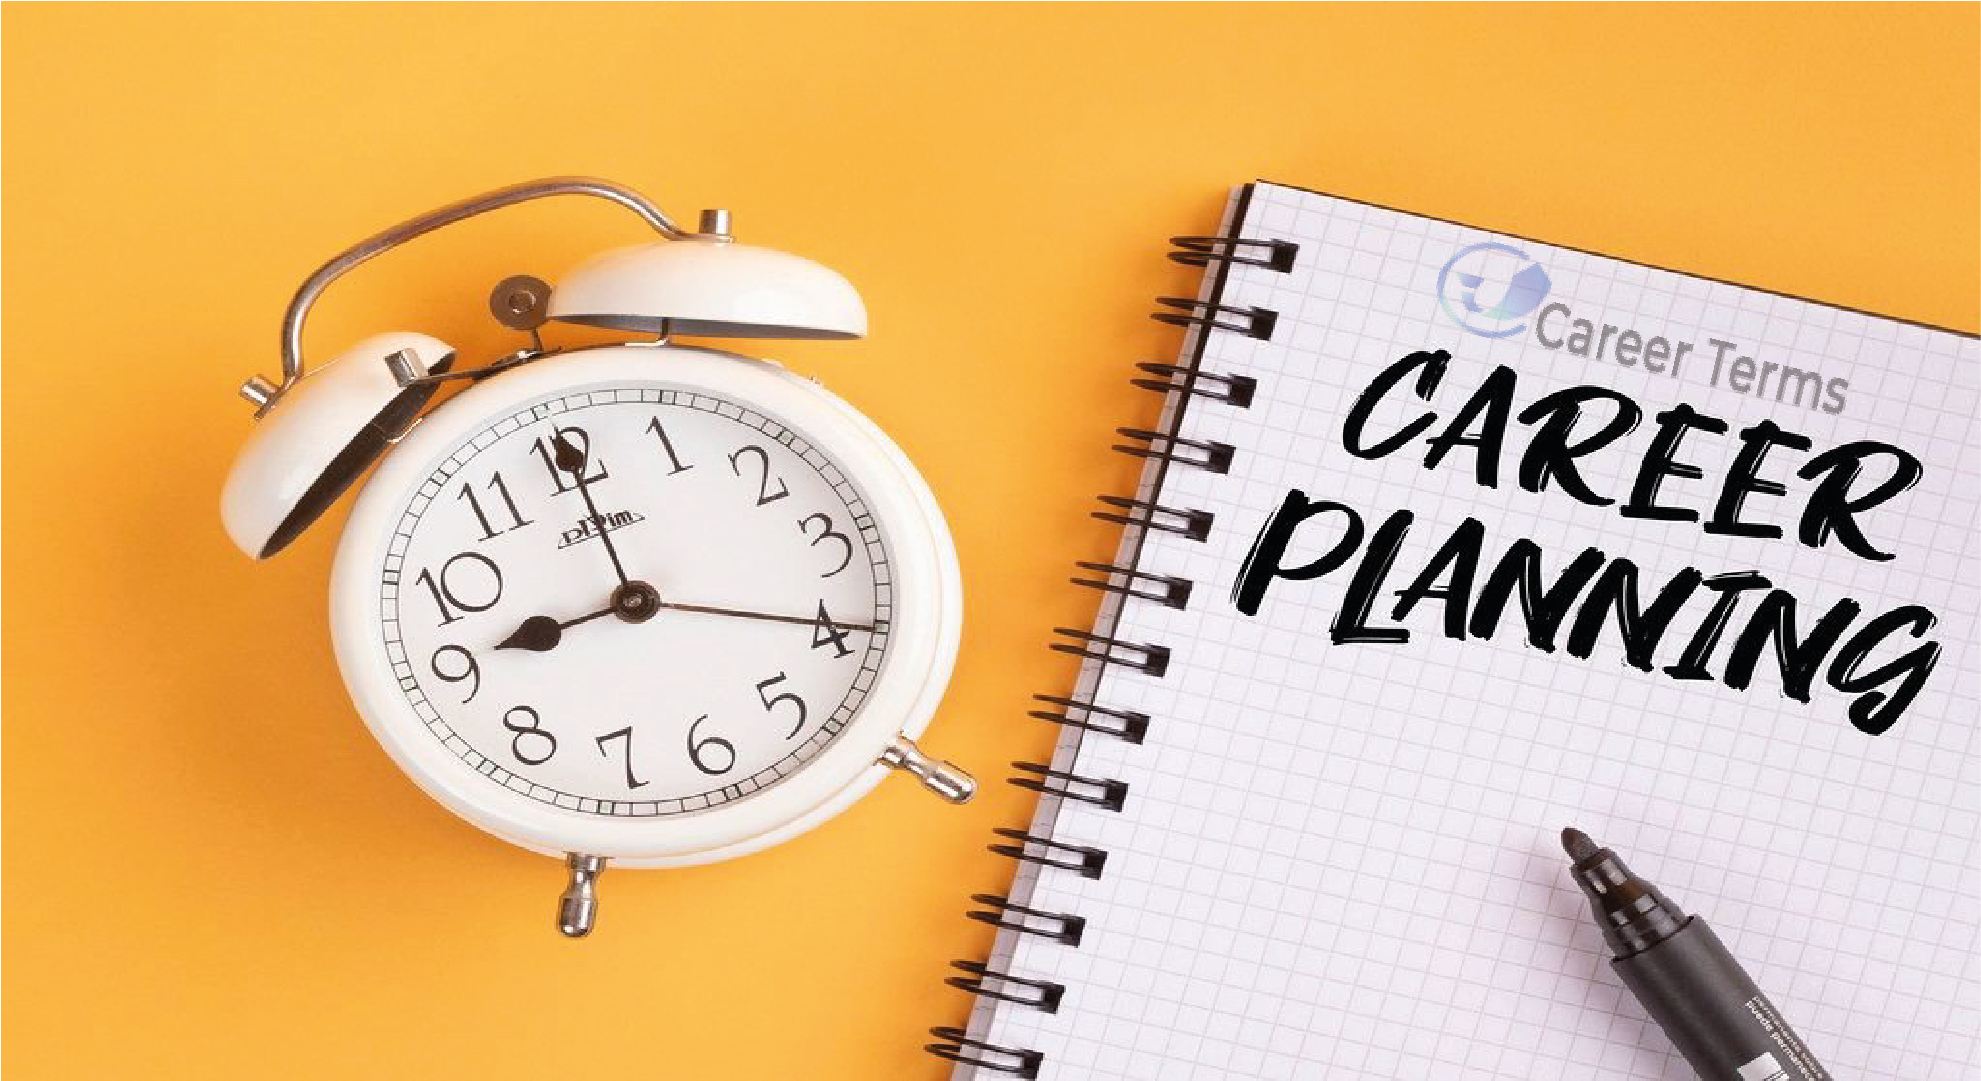 Advantages of Career Planning